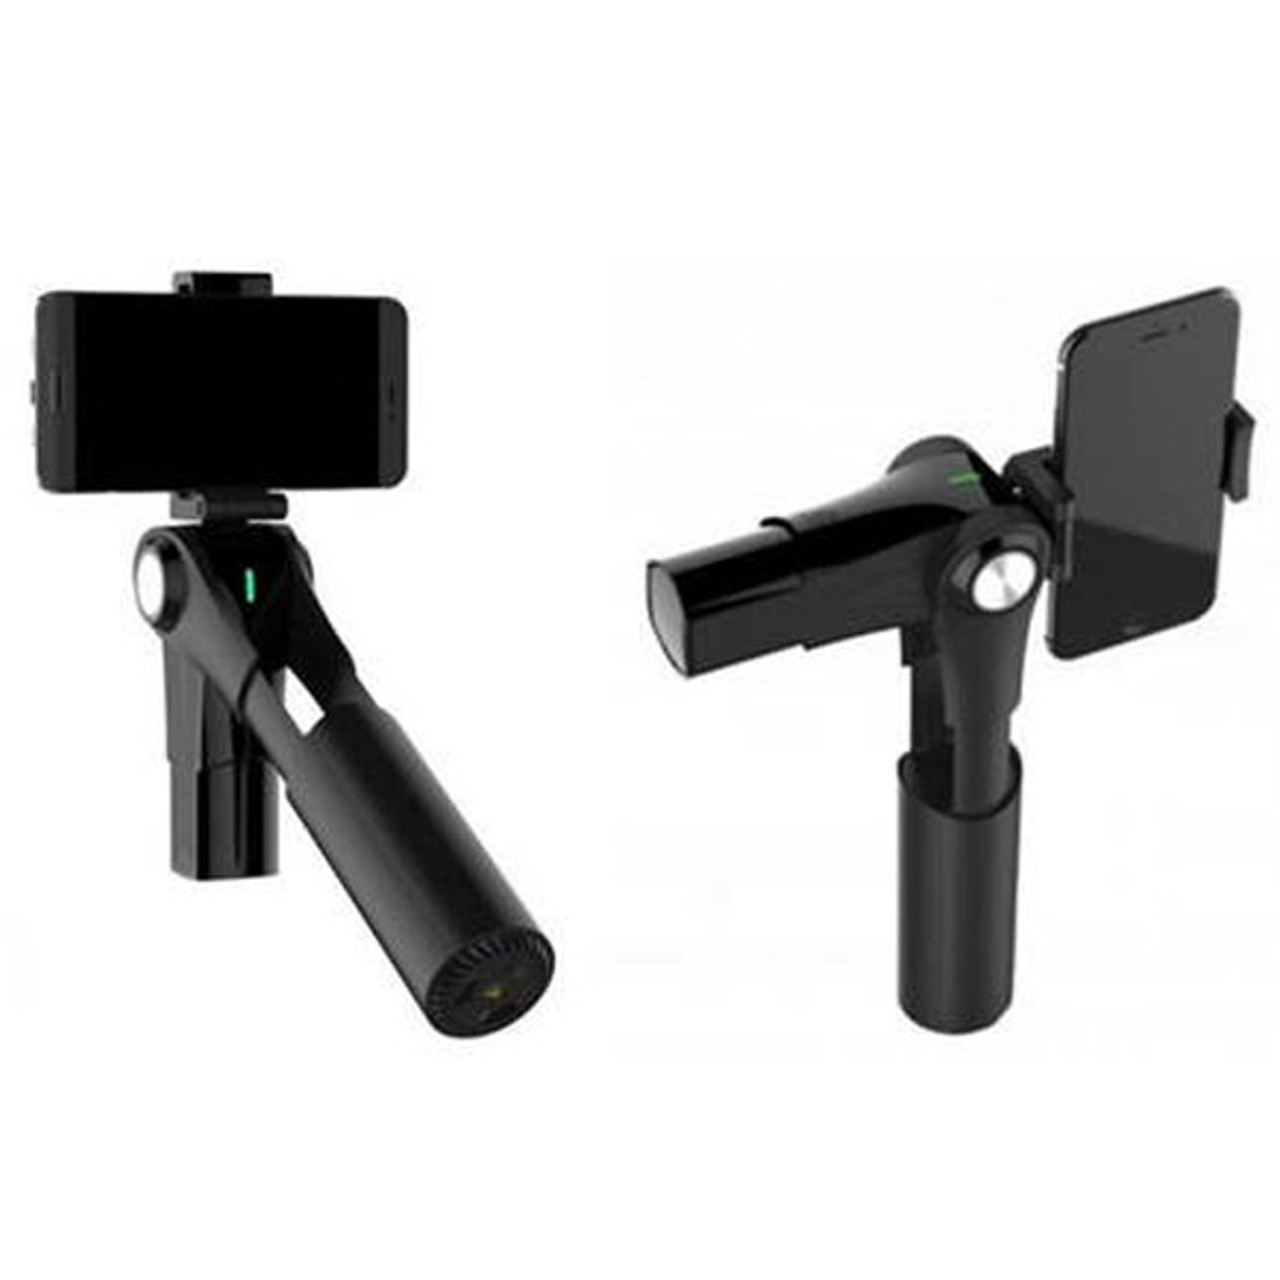 Product image for Snoppa M1 3-Axis Smartphone Gimbal | CX Computer Superstore